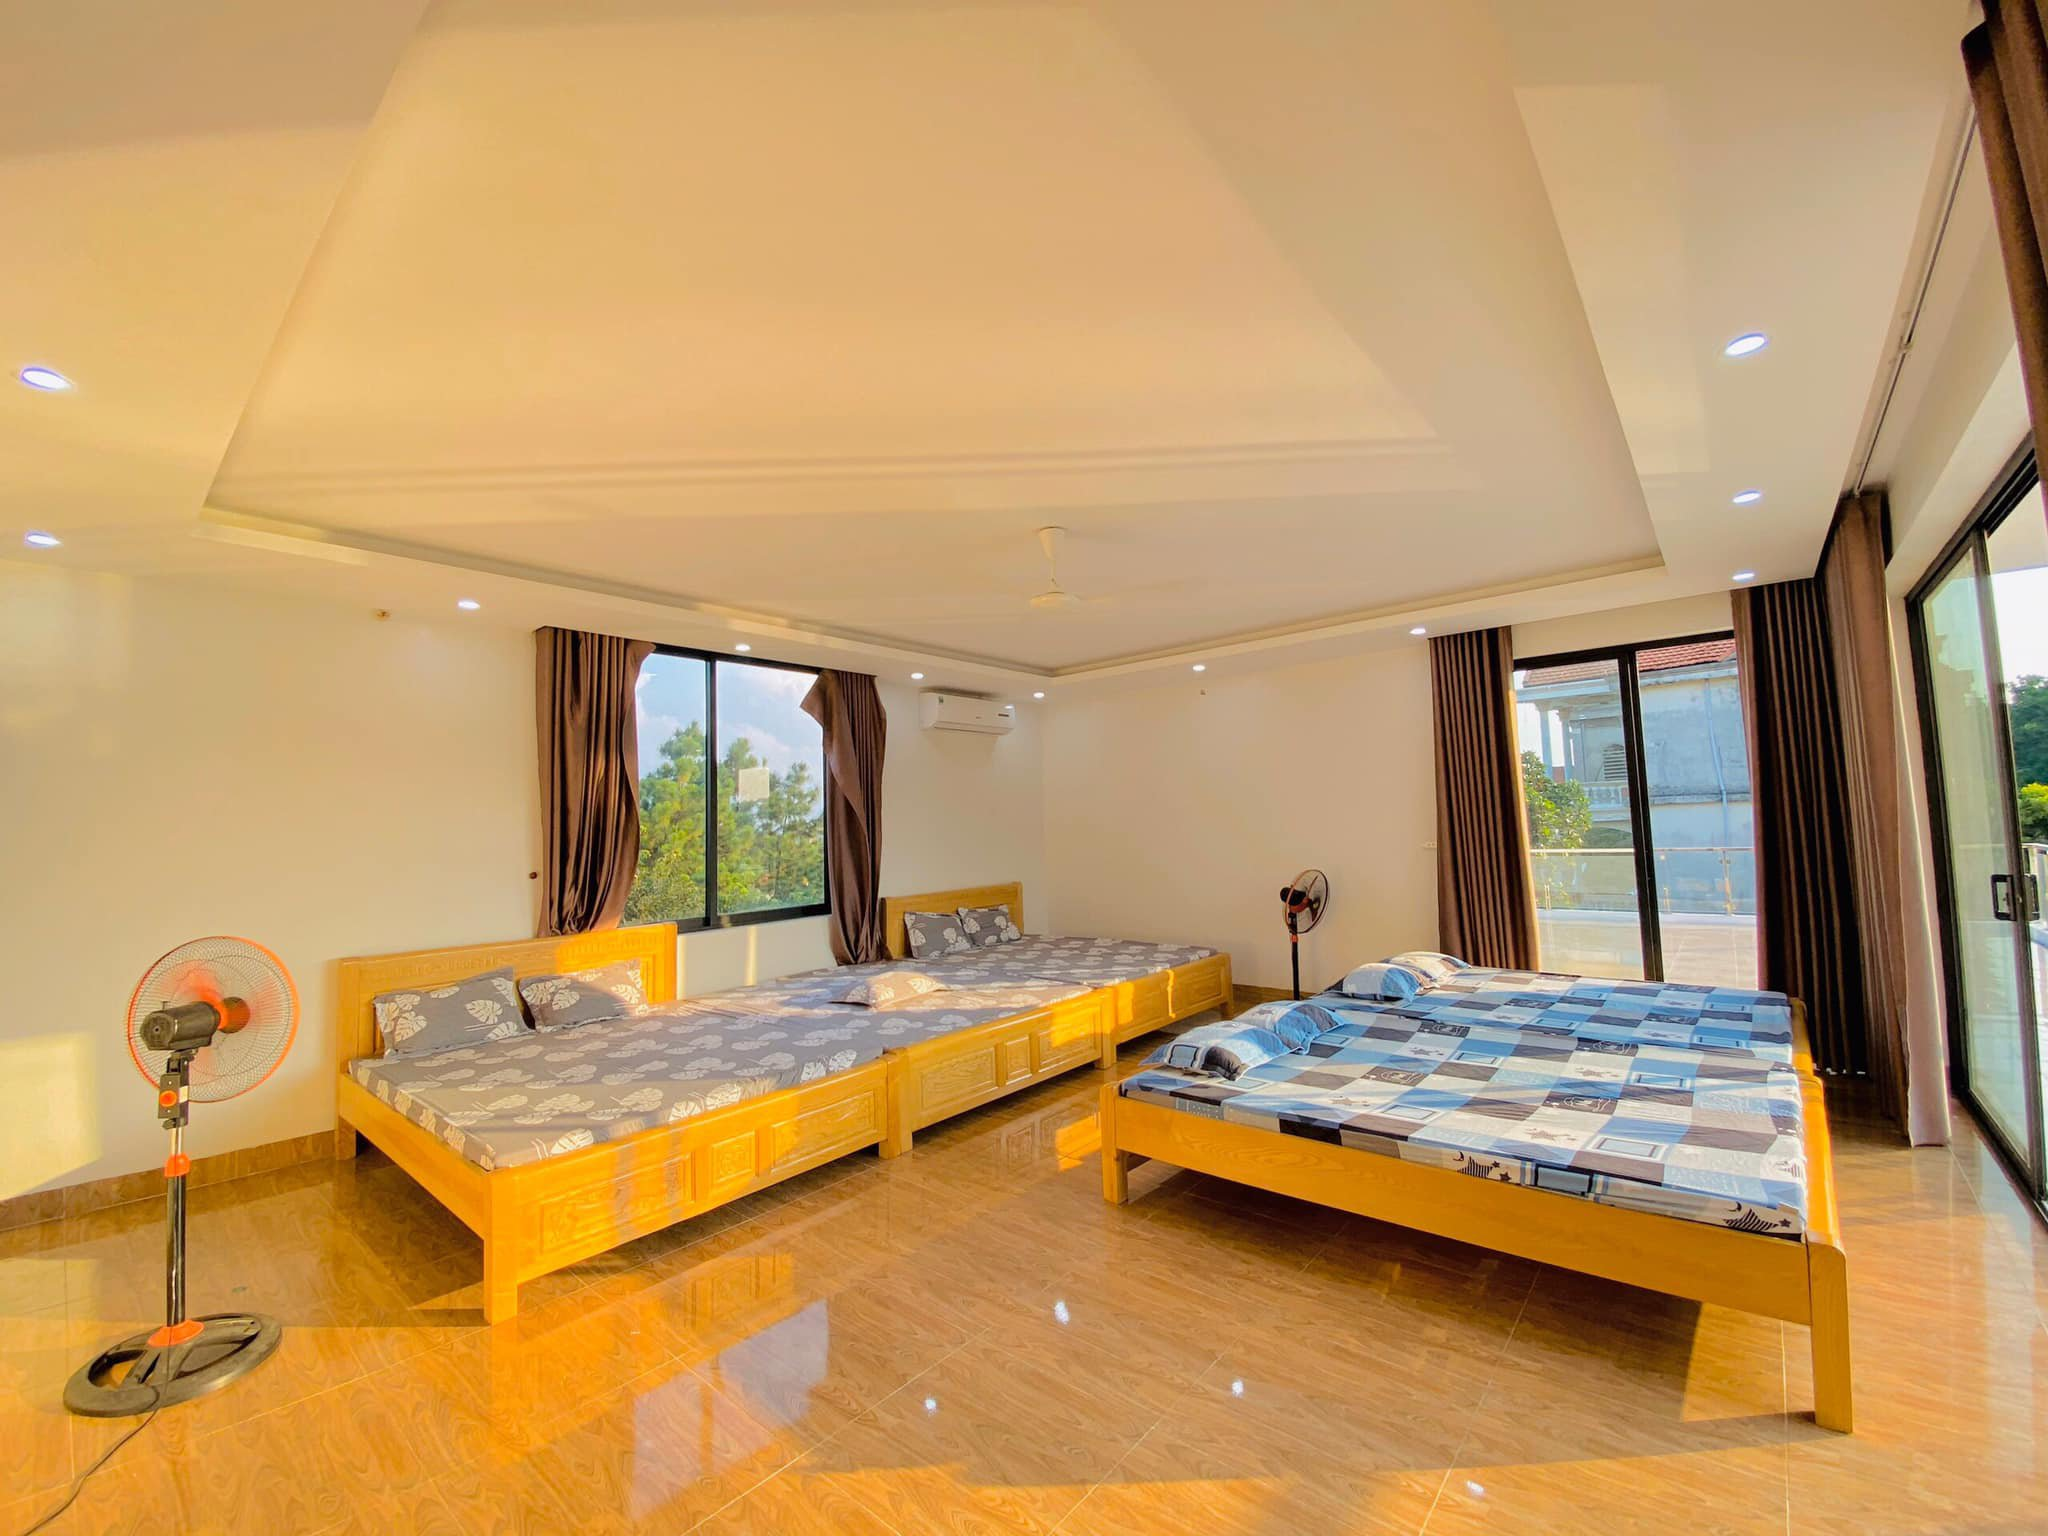 phong-ngu-lakeview-villa-homestay-soc-son-ha-noi-02